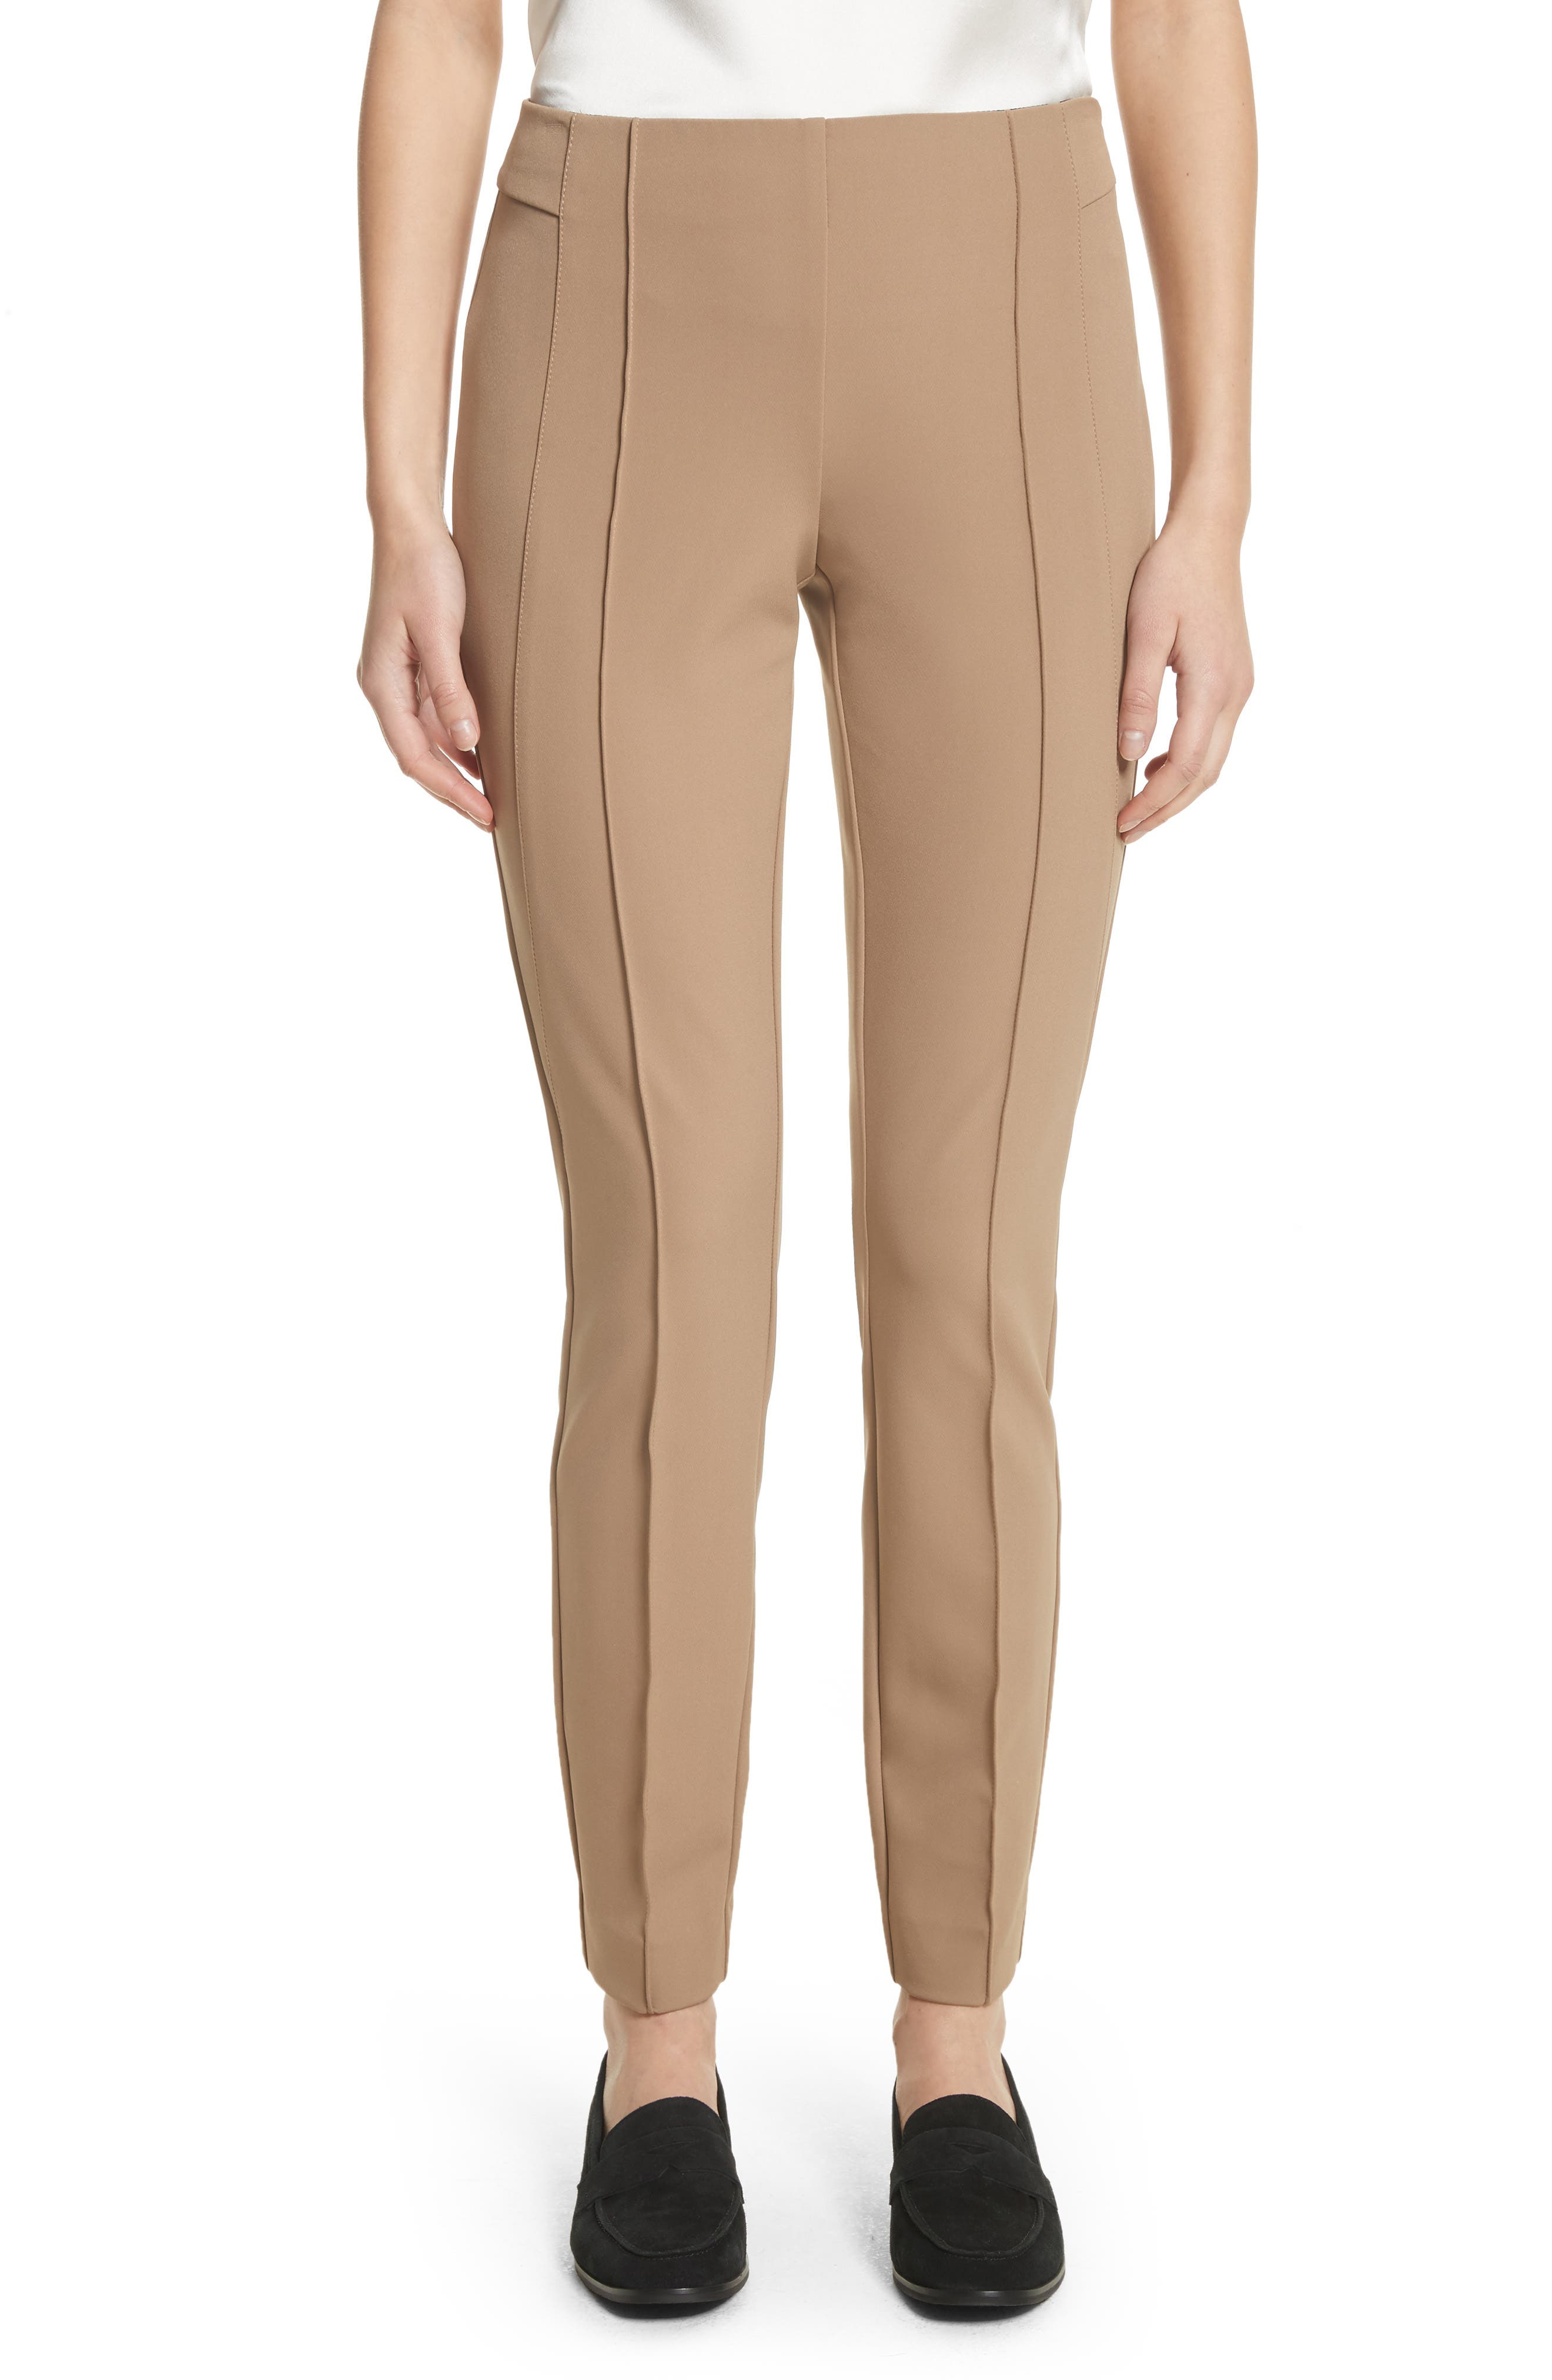 'Gramercy' Acclaimed Stretch Pants,                         Main,                         color, Cammello